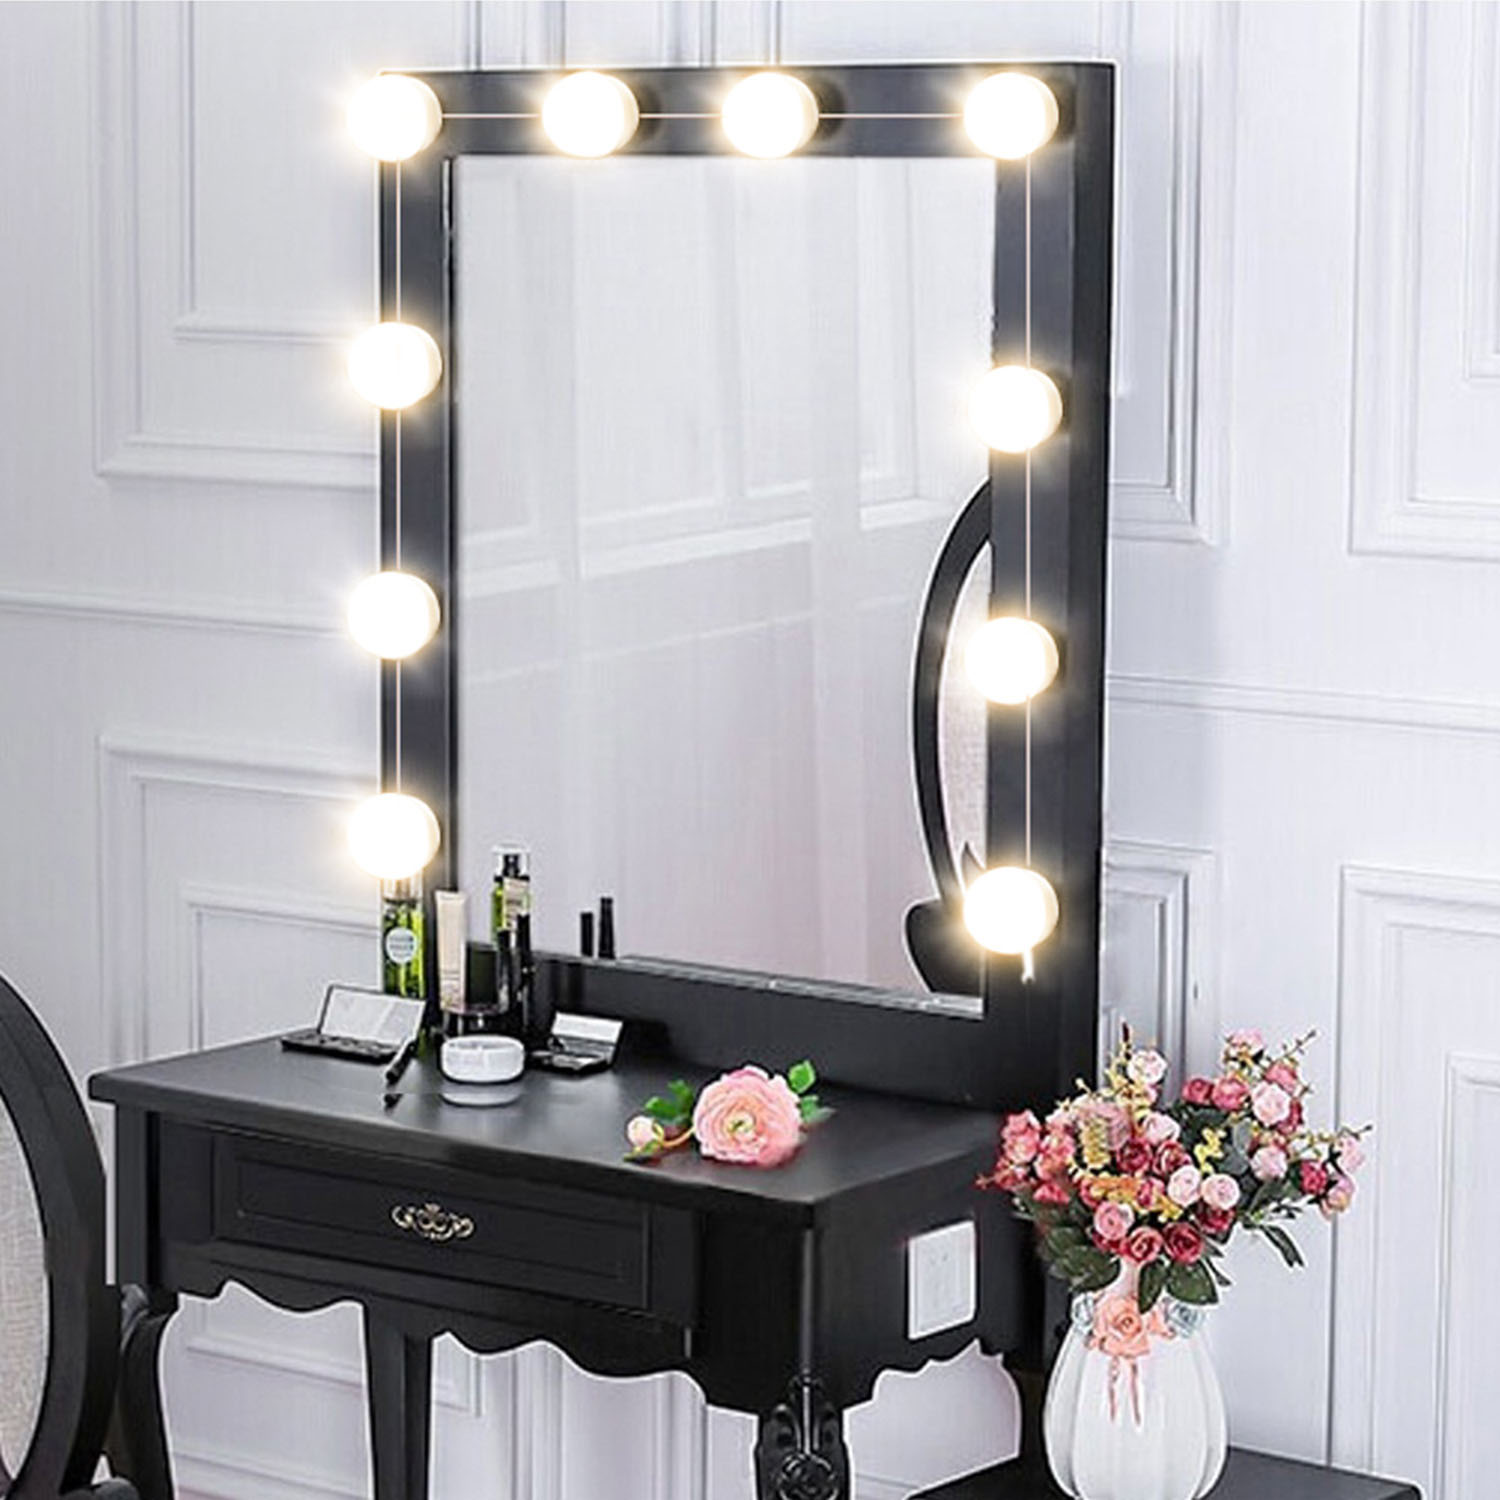 makeup mirror led lights 10 hollywood vanity light bulbs for dressing table with dimmer and plug. Black Bedroom Furniture Sets. Home Design Ideas